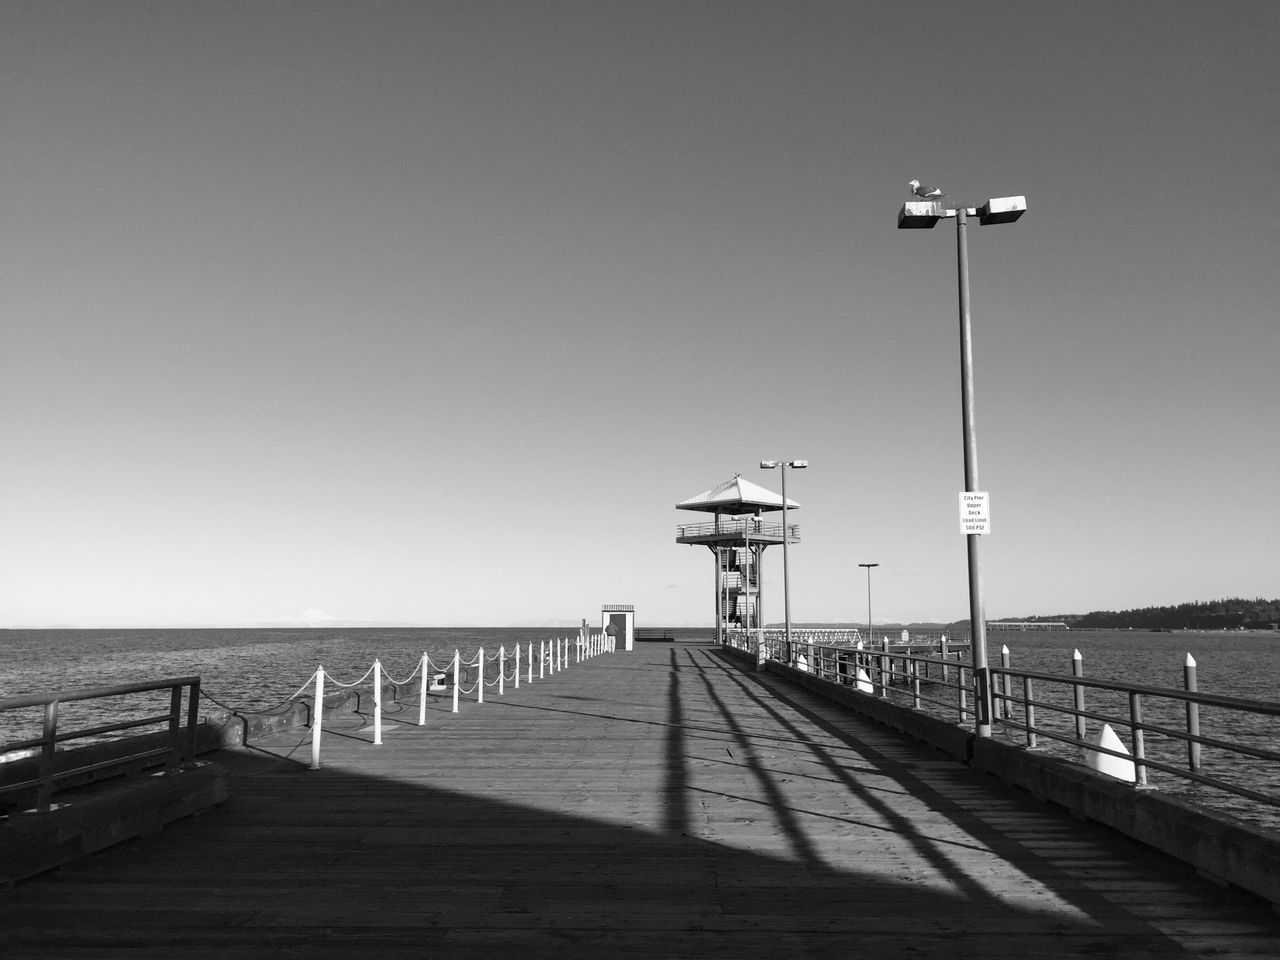 The pier at Port Angles, WA- where the mountains meet the sea. Sea Railing Clear Sky Built Structure Sky Outdoors Pier Water Nature Scenics Day Architecture The Way Forward Building Exterior Tranquility Horizon Over Water No People IPhoneography Blackandwhite Black And White